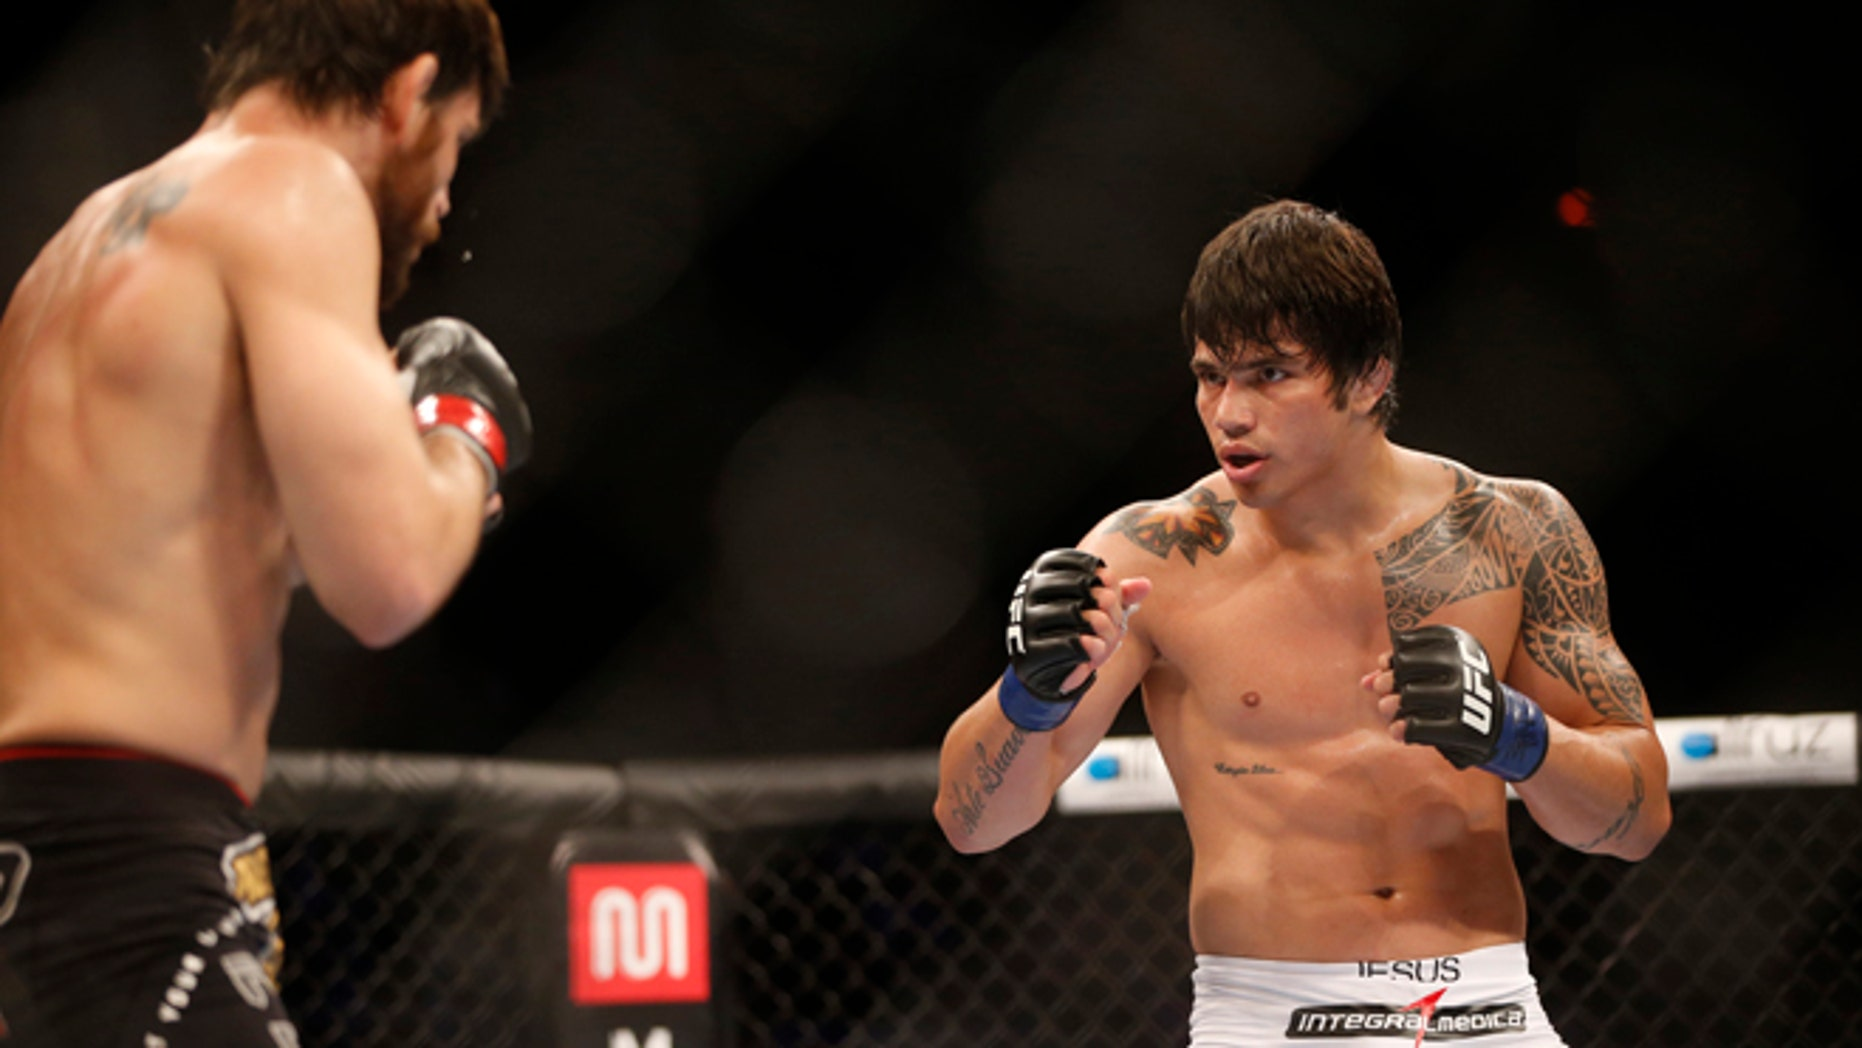 Oct.14, 2012: In this file photo, Erick Silva, right, from Brazil, fights Jon Fitch, left, from the United States, during their welterweight mixed martial arts bout at the Ultimate Fighting Championship (UFC) 153 in Rio de Janeiro, Brazil.